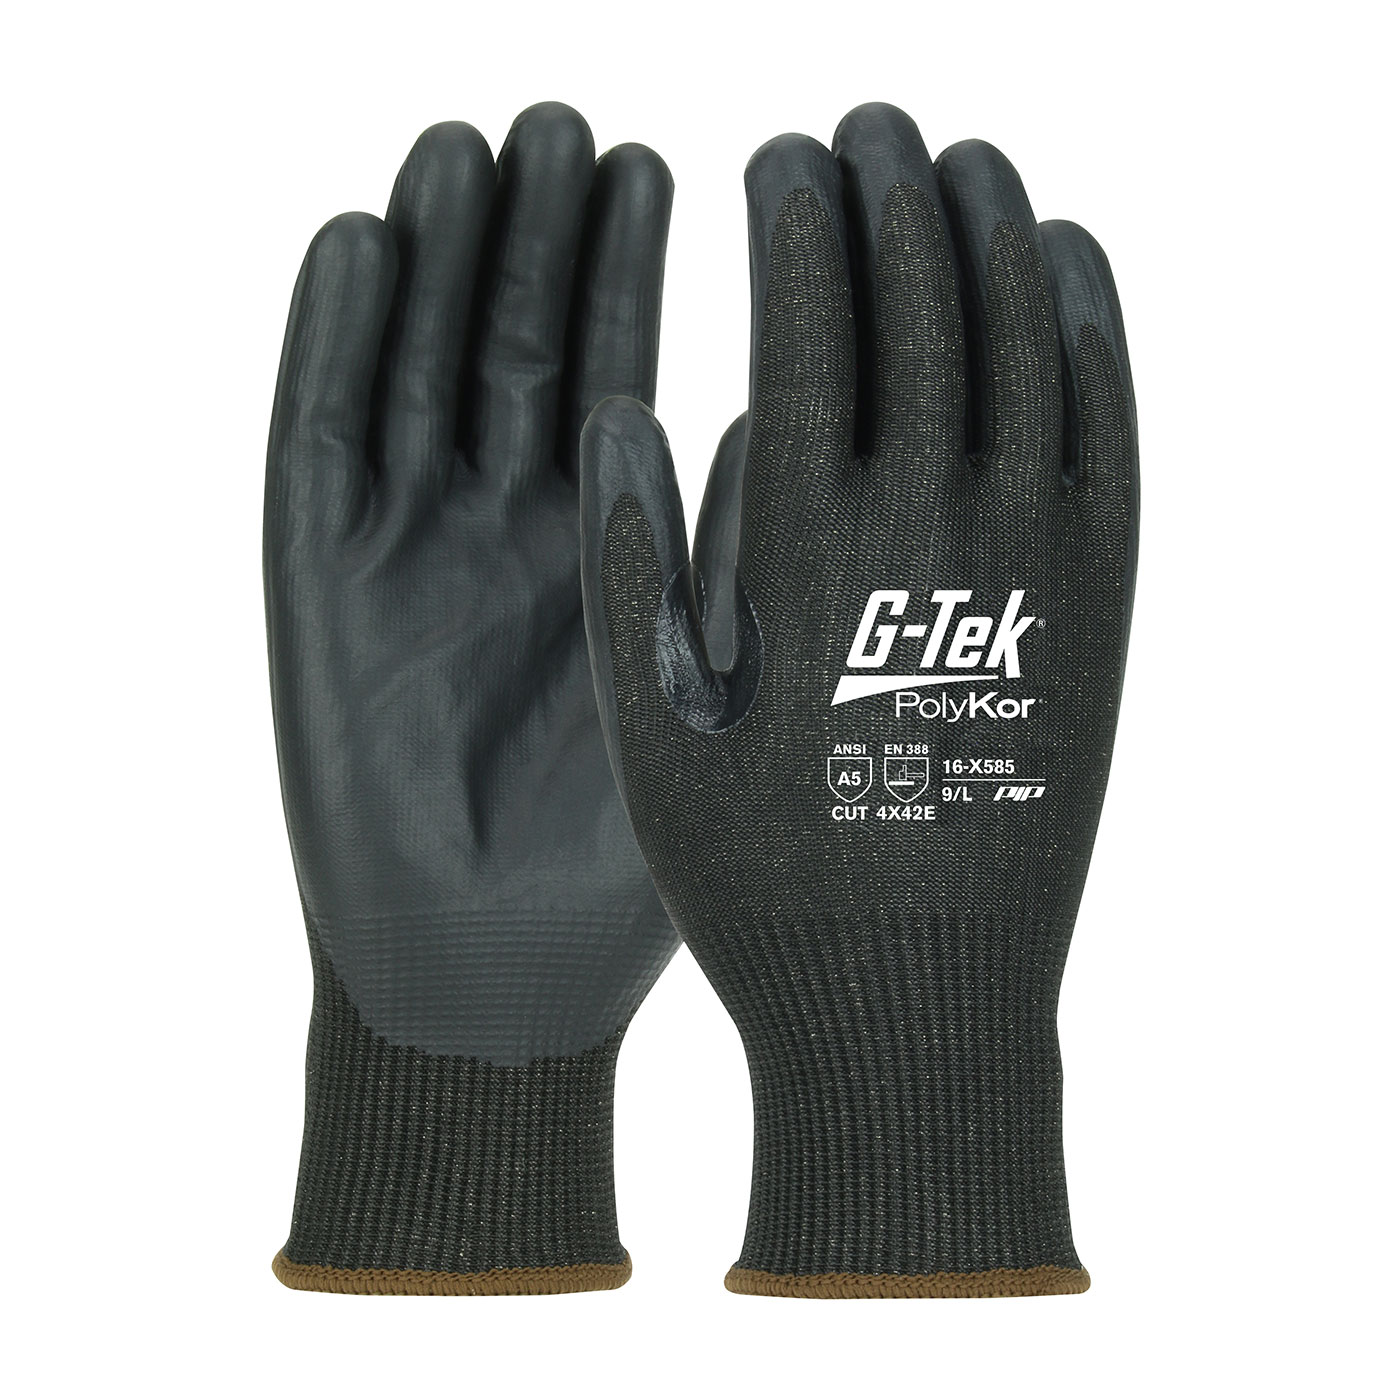 #16-X585 PIP® G-Tek® PolyKor™ Xrystal™ NeoFoam™ Coated Palm Knit Touchscreen compatible A5 Gloves